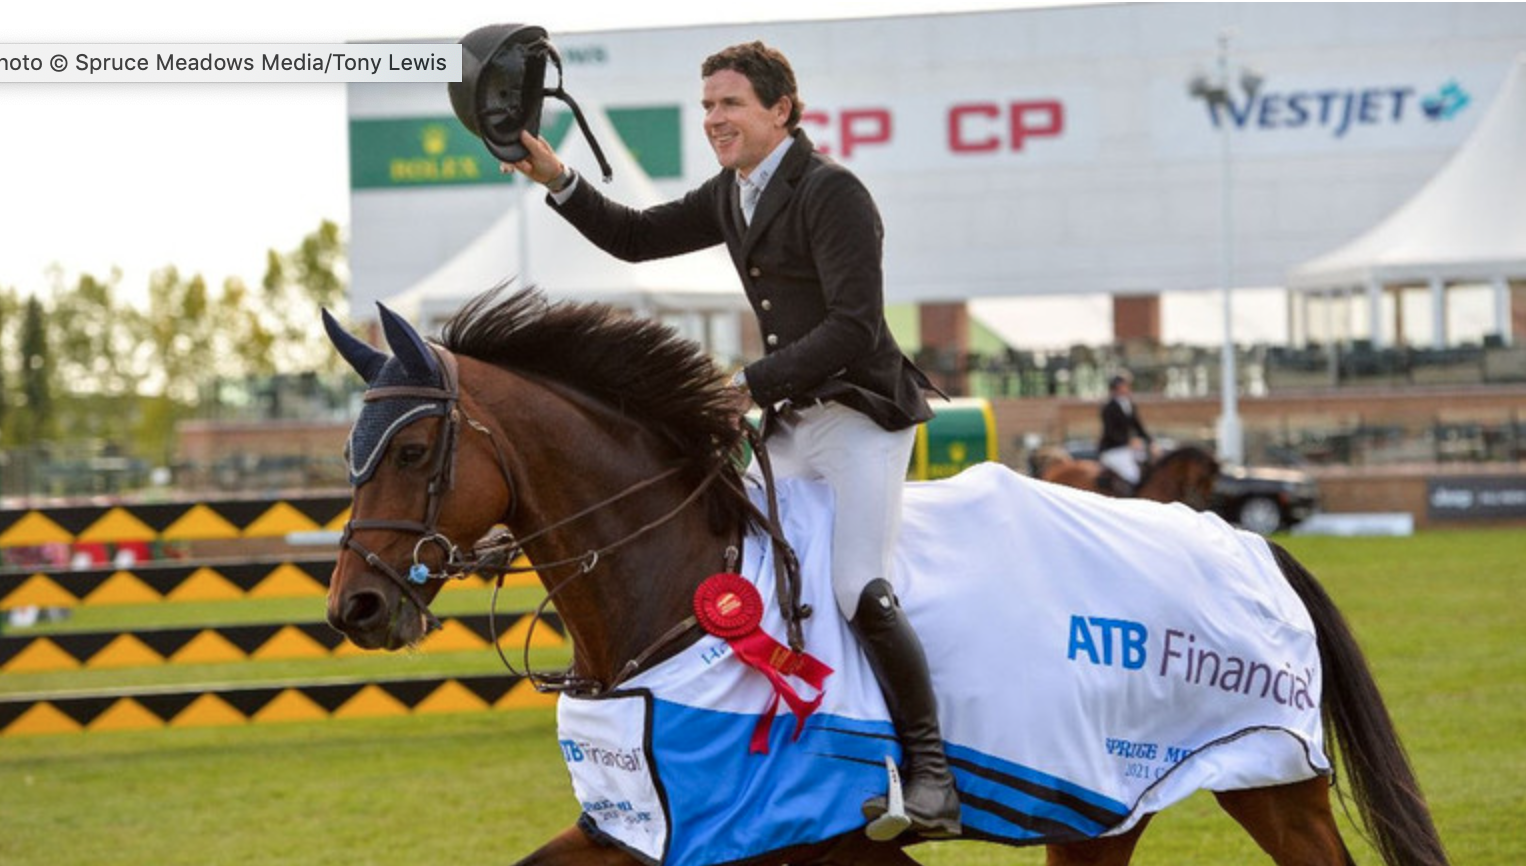 Conor Swail and Count Me In claim another Spruce Meadows victory in the ATB Financial Cup